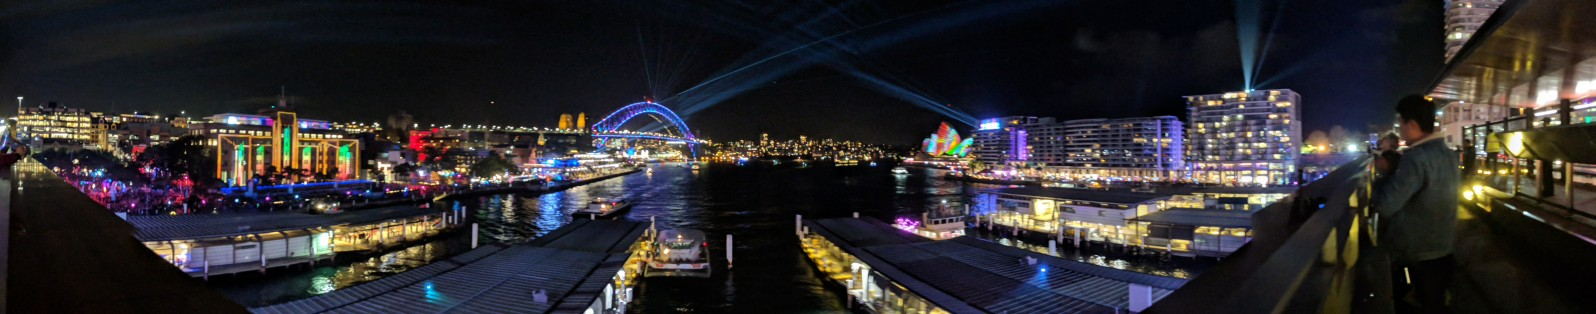 Cahill Expressway View of Sydney's Vivid Festival